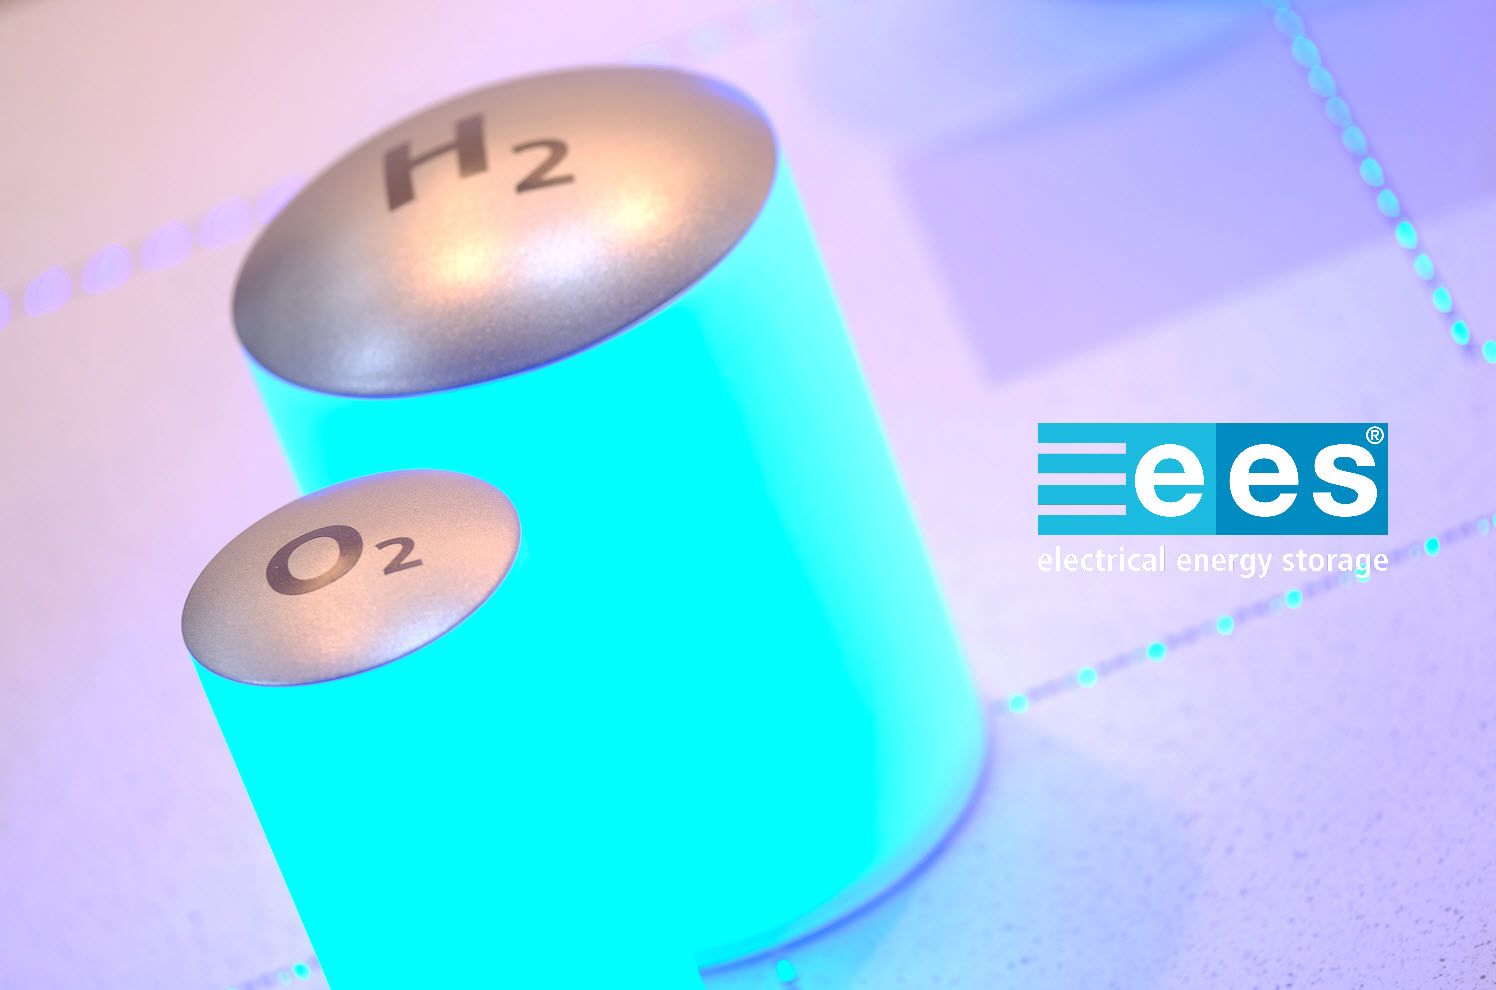 ees Europe 2021 Joining Forces to Ramp up Green Hydrogen Production